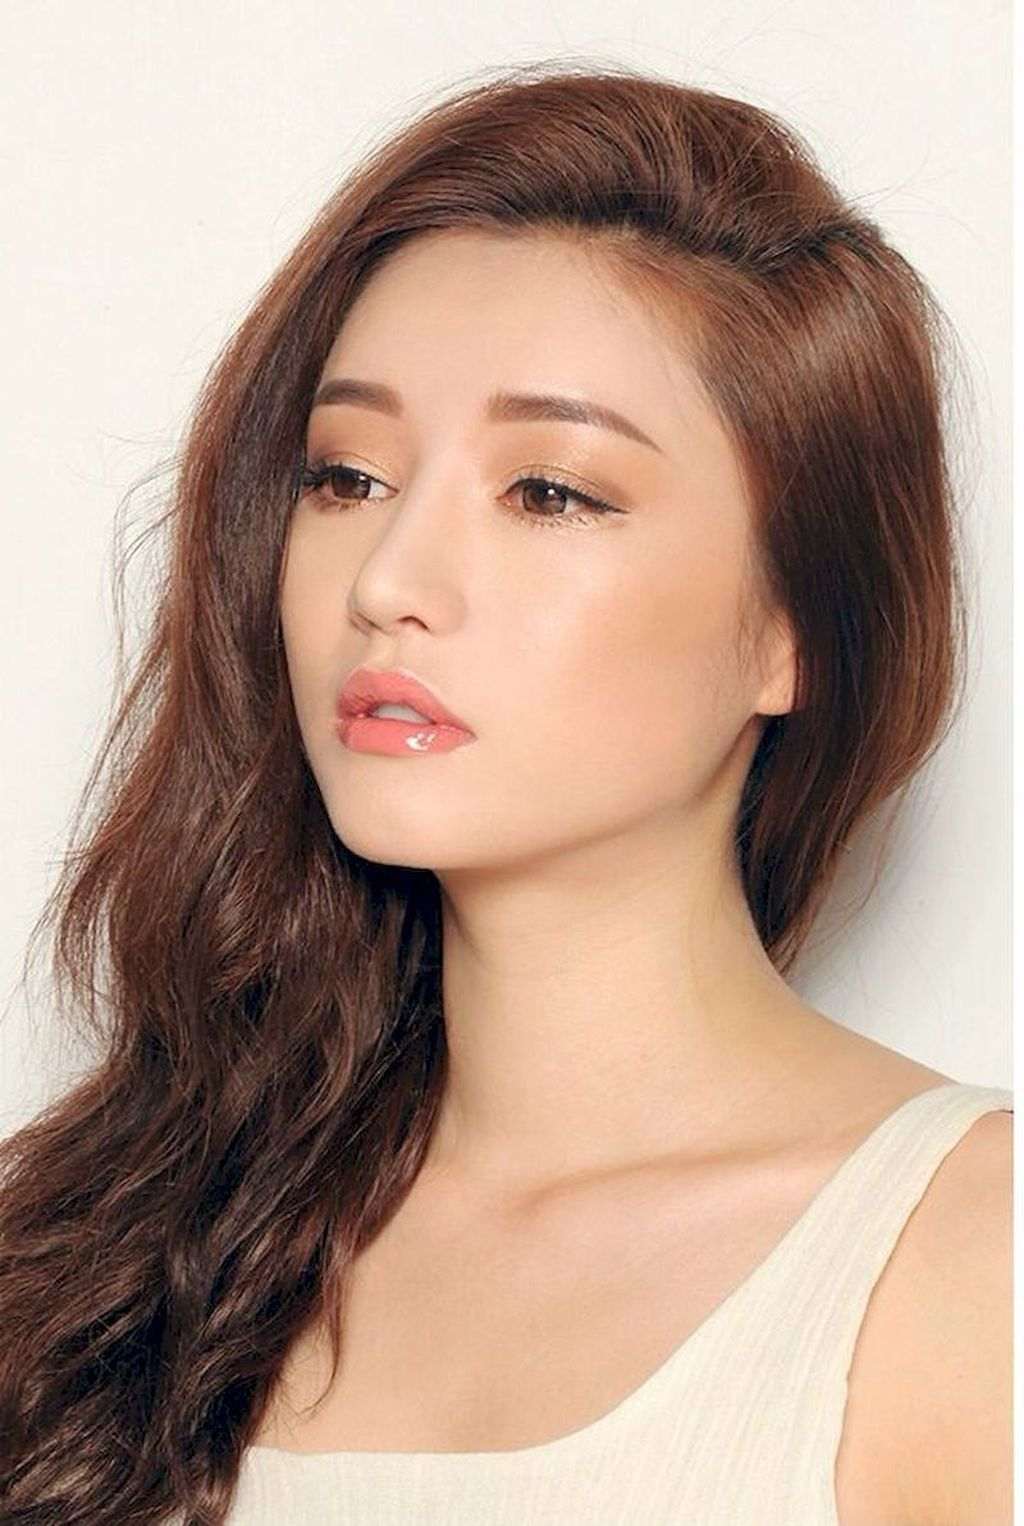 40+ Quick And Simple Asian Makeup Ideas To Try Now